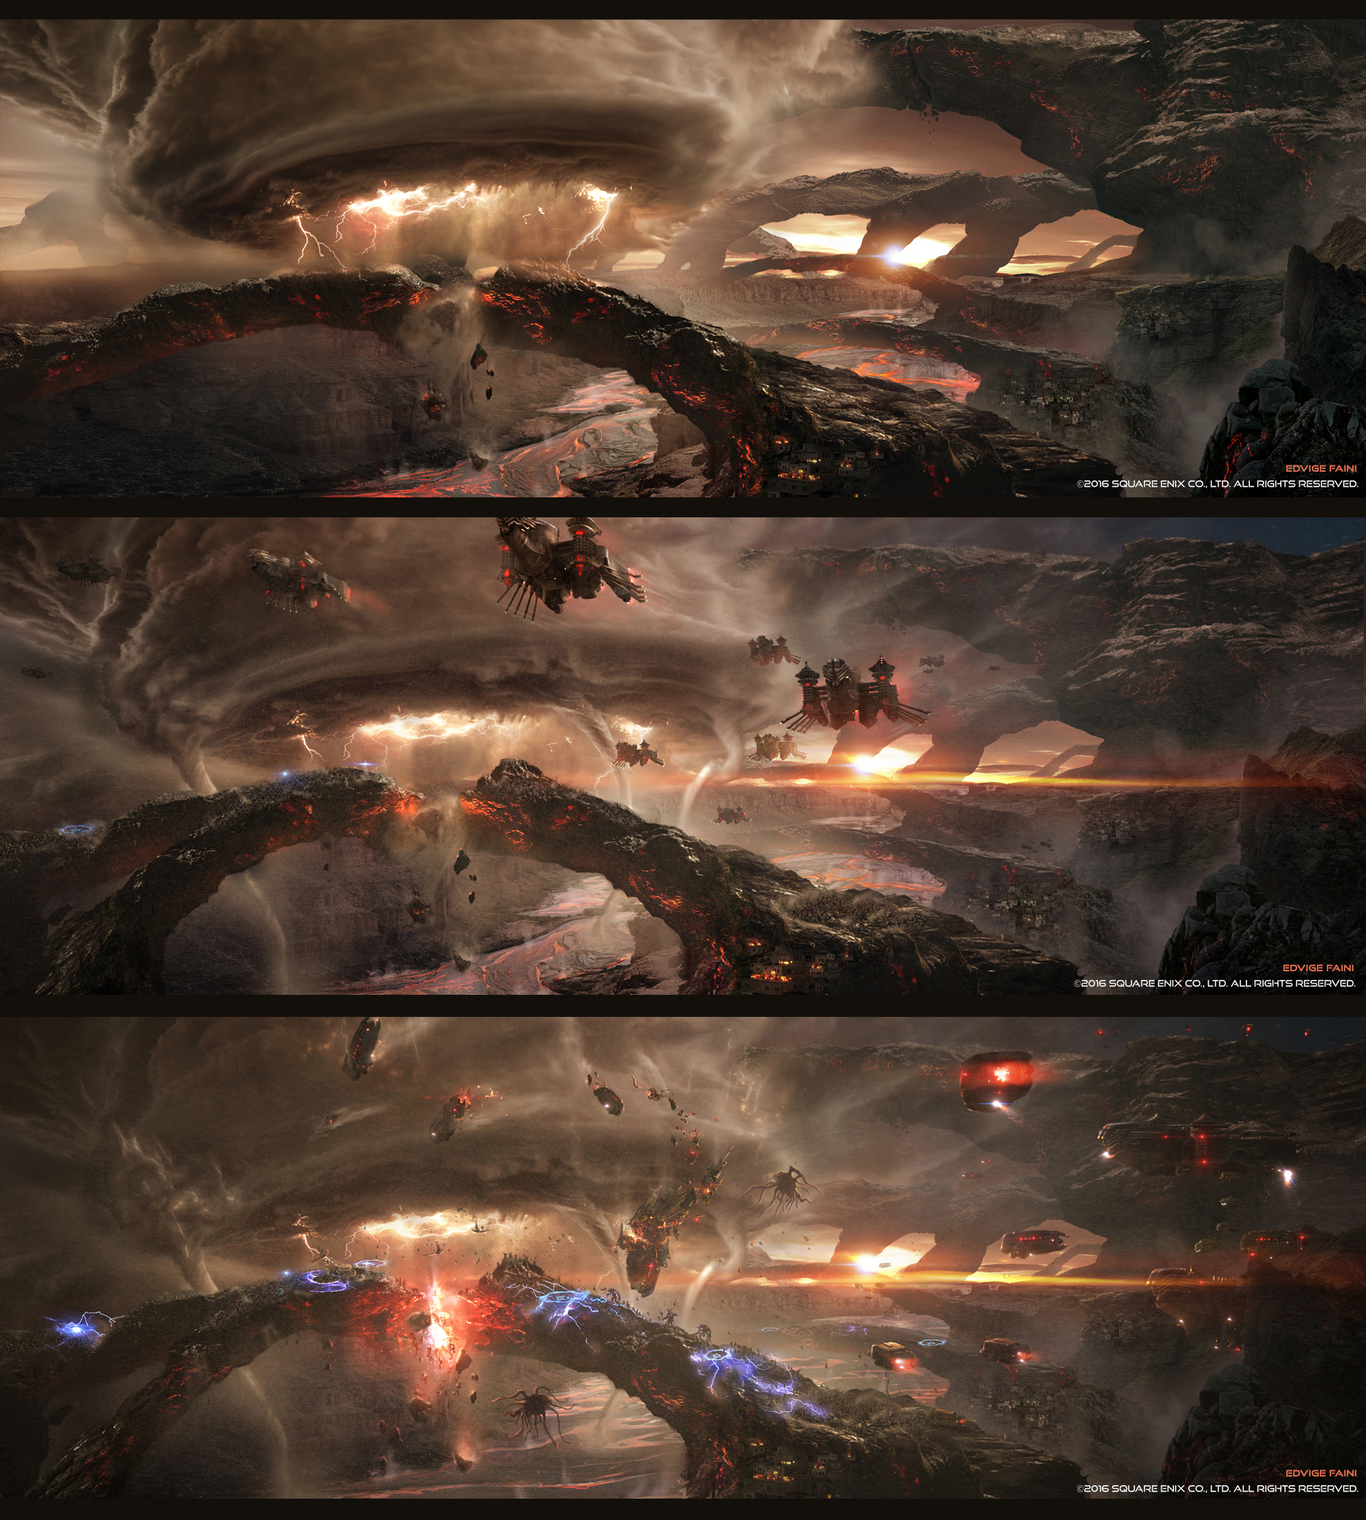 Kingsglaive Final Fantasy Xv Battle Sequence Concept